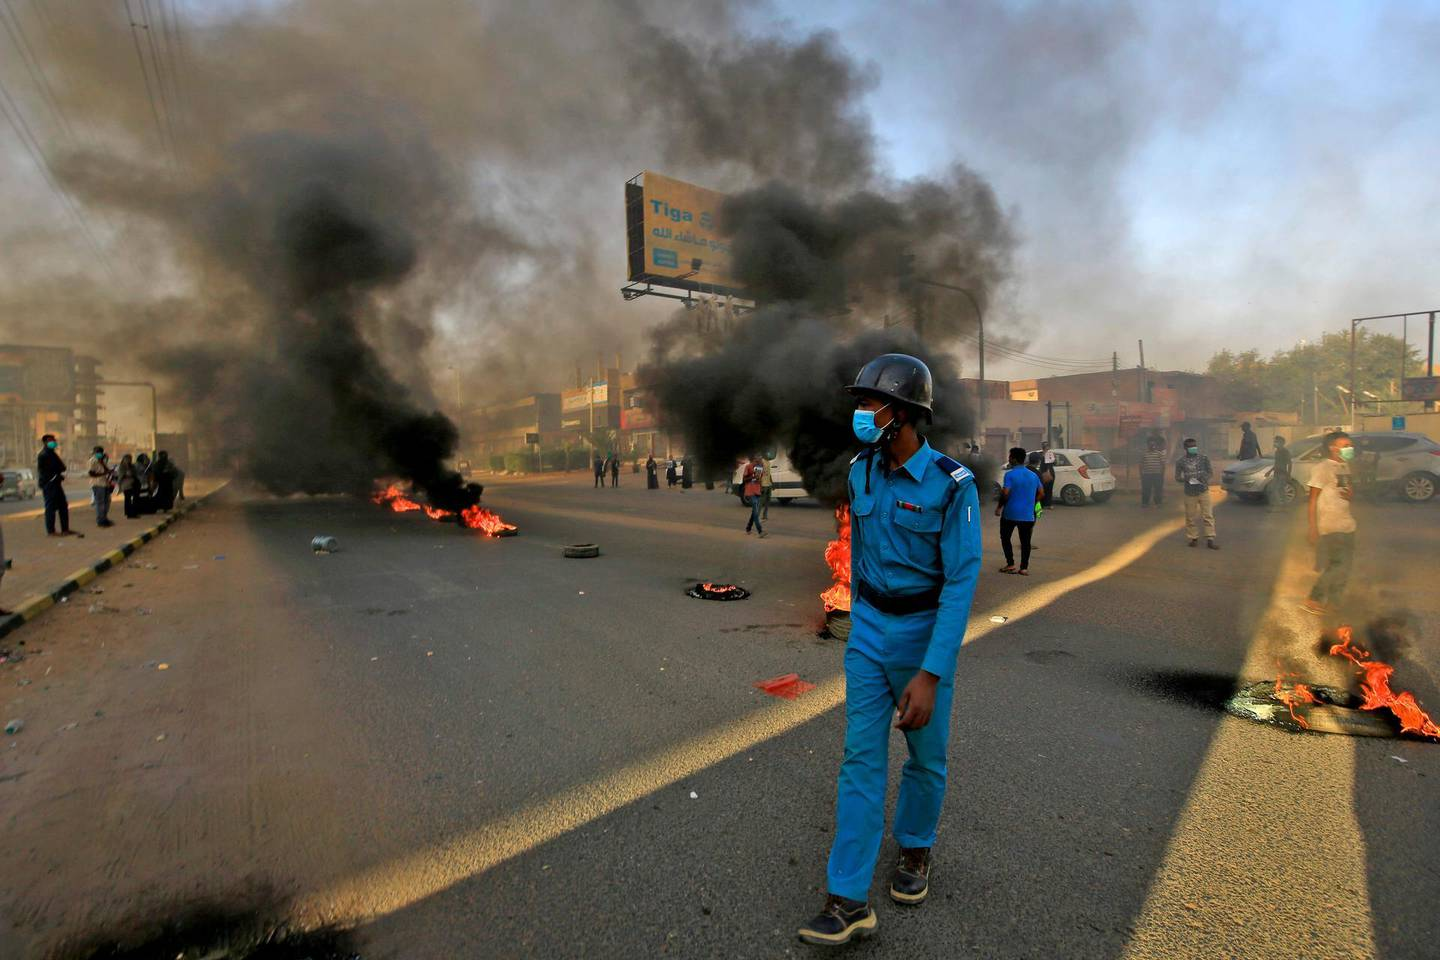 TOPSHOT - A mask-clad policeman walks near tires set aflame by Sudanese protesters marking the first anniversary of a raid on an anti-government sit-in, in the Riyadh district in the east of the capital Khartoum on June 3, 2020. Scores of protesters were killed when armed men in military fatigues stormed the sprawling encampment outside Khartoum's army headquarters on June 3 last year. / AFP / ASHRAF SHAZLY